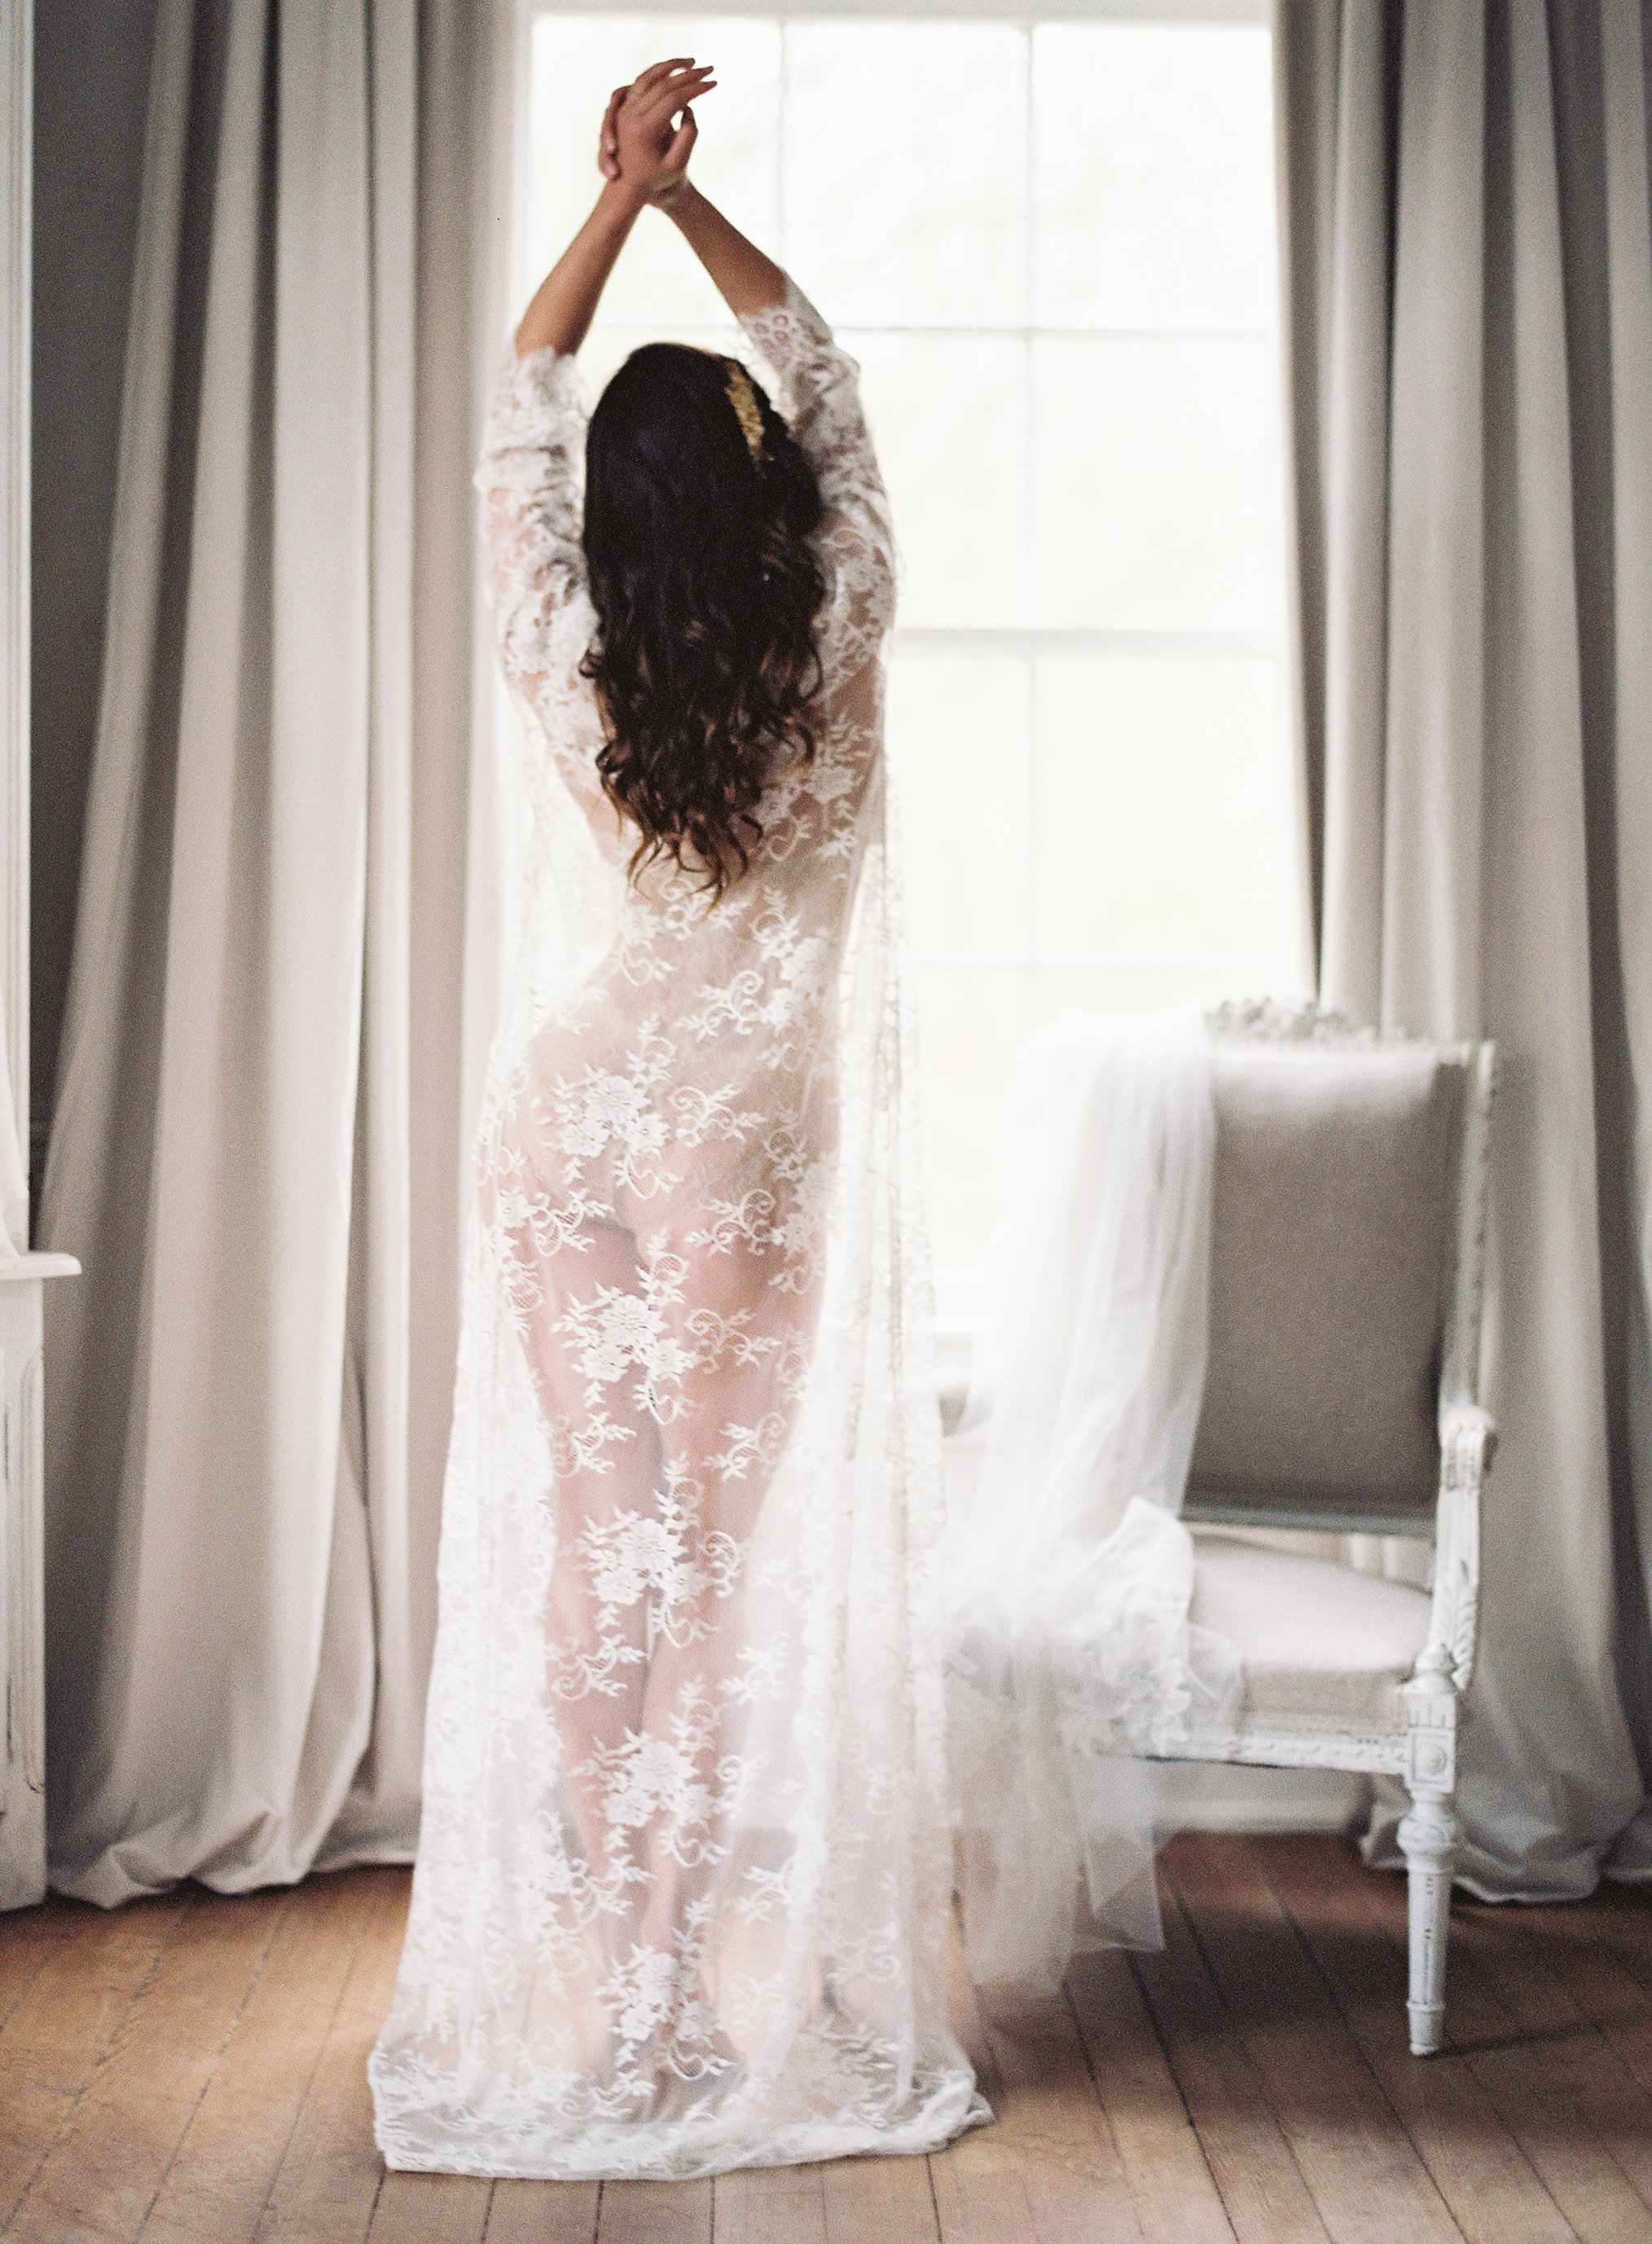 Fine Art Film Boudoir with Michael and Carina Photography and East Made Event Company Wedding Stylist-0025.jpg